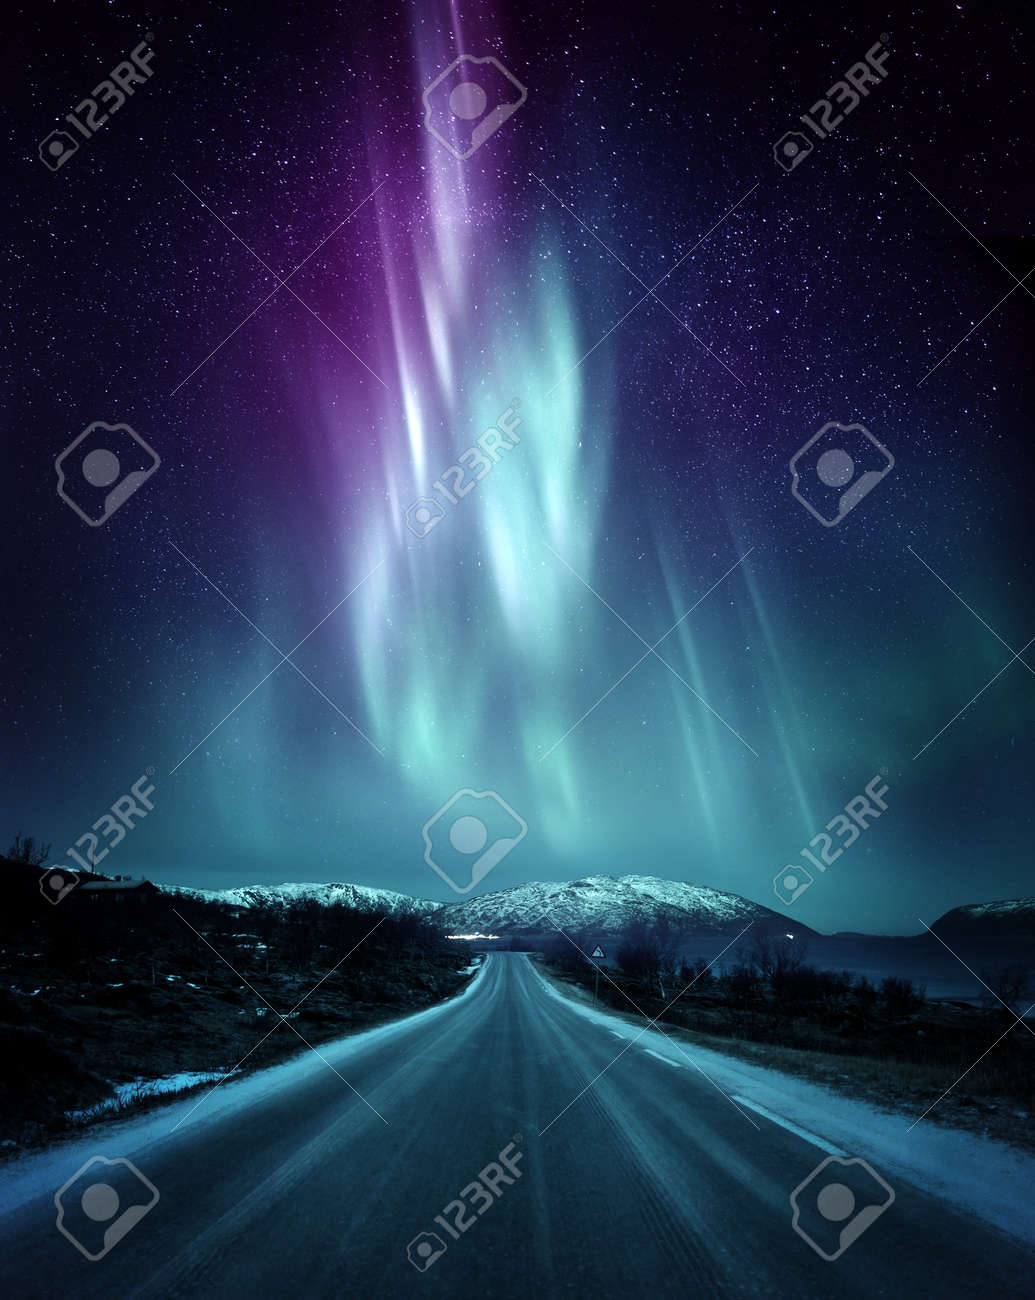 A quite road in Norway with a spectacular Northern Light Aurora display lighting up the night sky above the mountains. A popular destination within the arctic circle for hunting the Northern Lights. Photo Composite. - 110617506